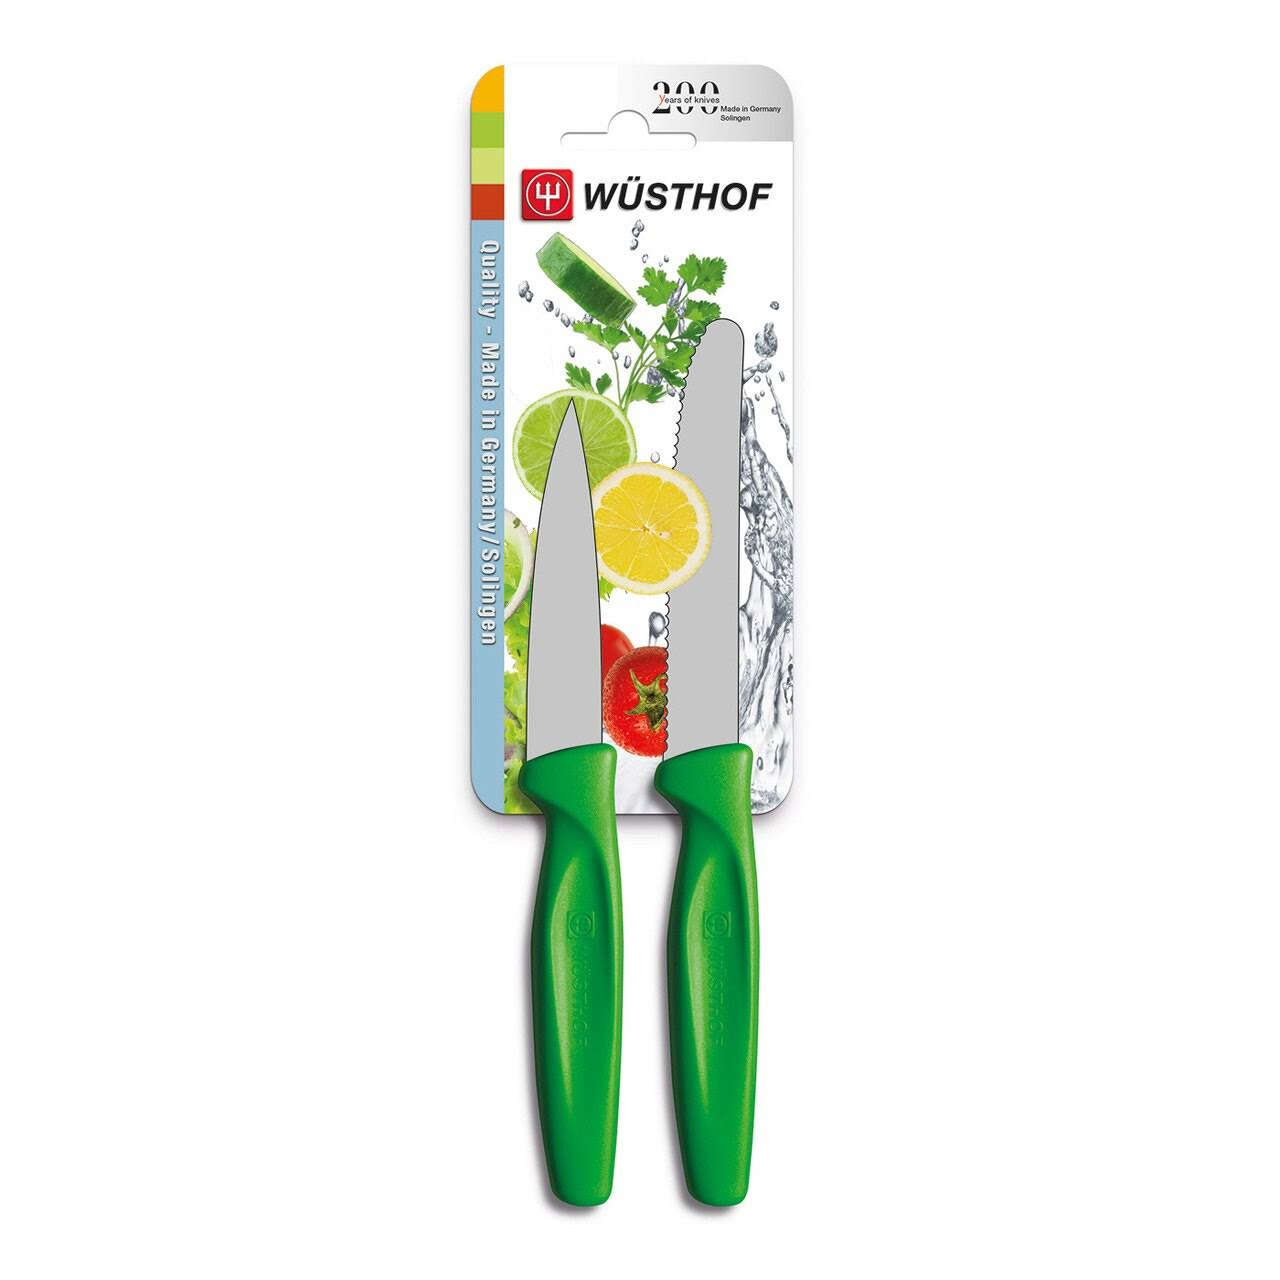 Wusthof Zest 2 Piece Paring & Serrated Knife Set, Green